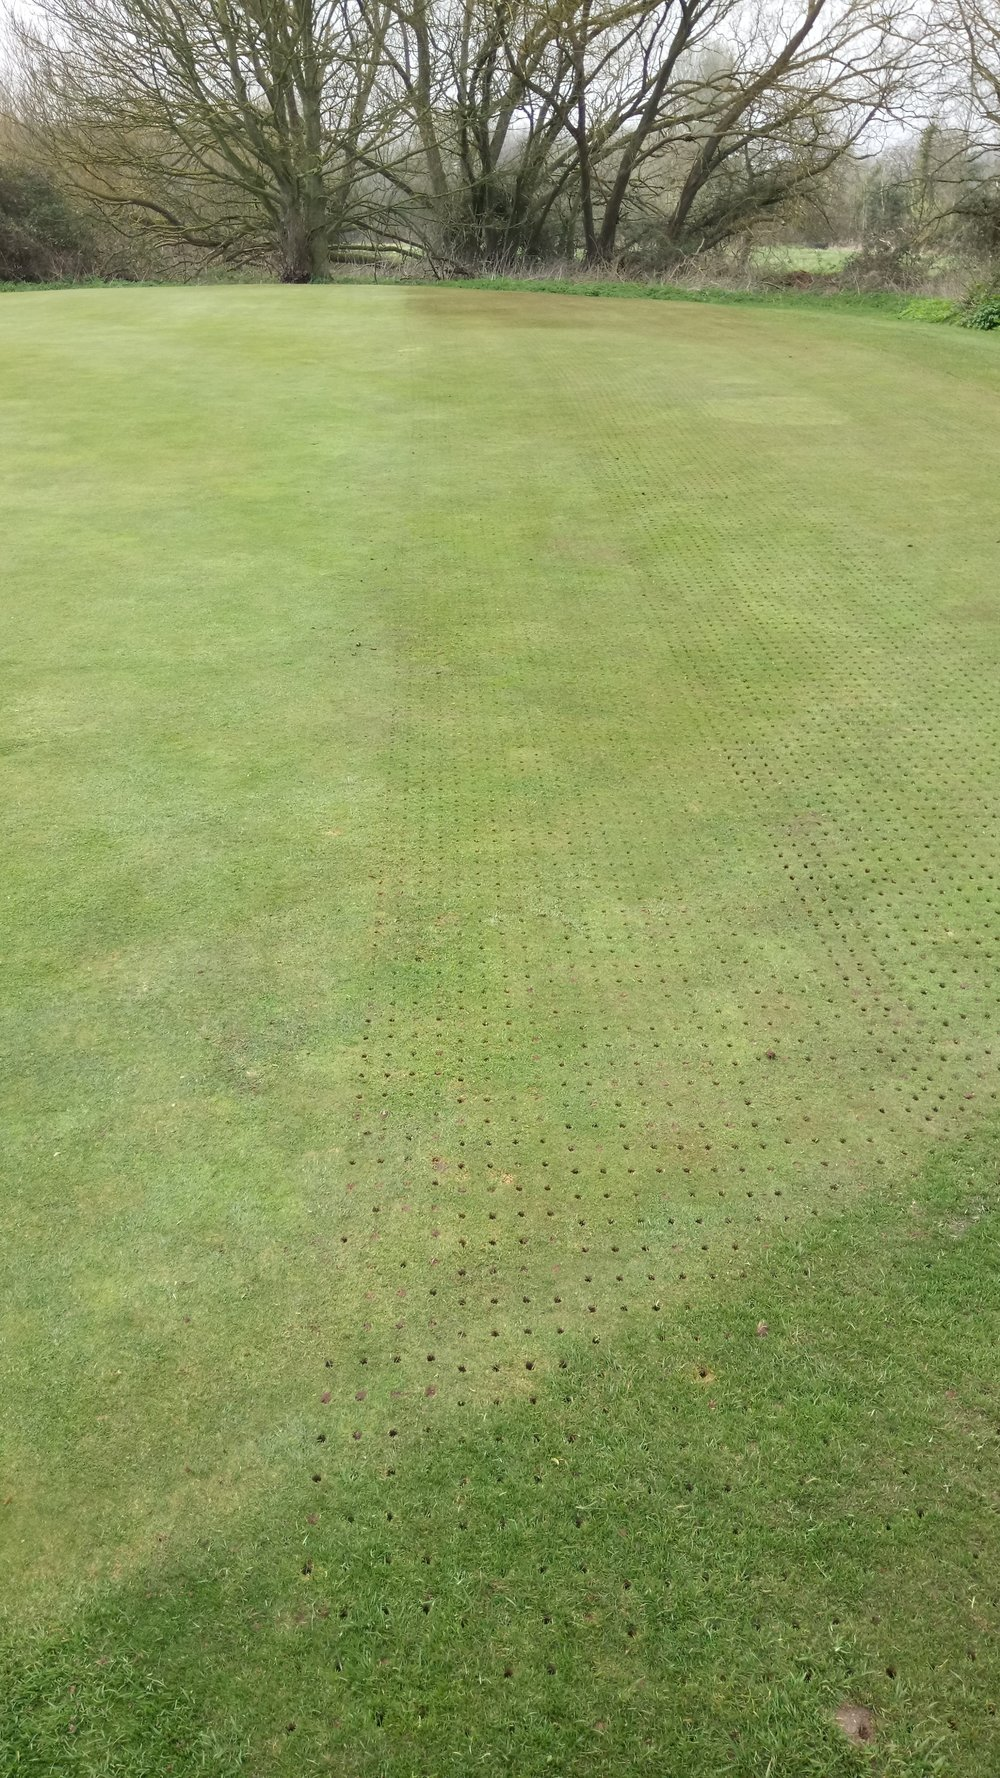 Hollow coring carried out on Monday 27th March